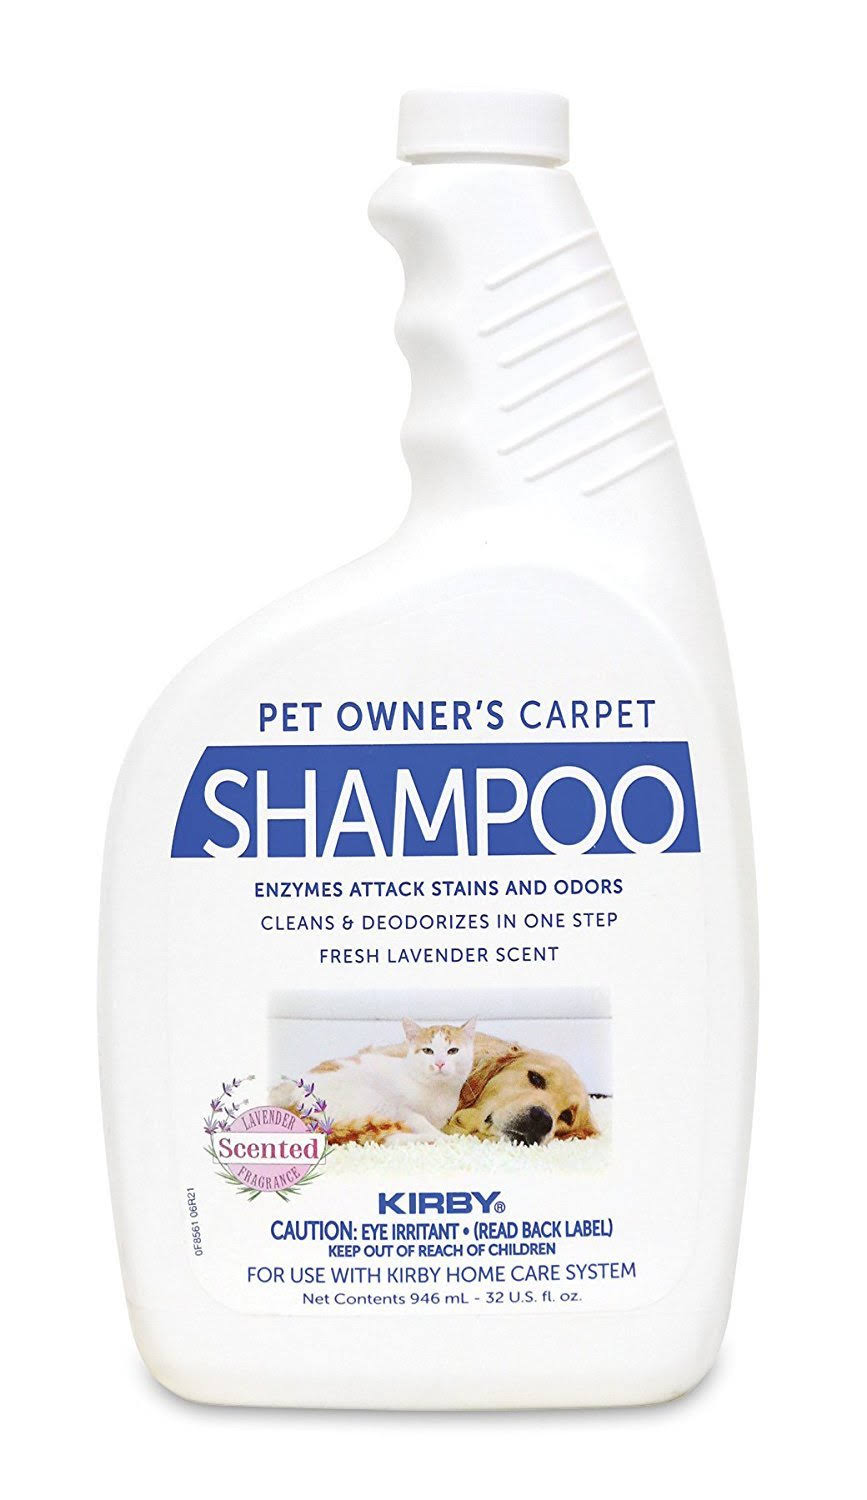 Kirby 235406 32 Oz.Regular Pet Shampoo, 1